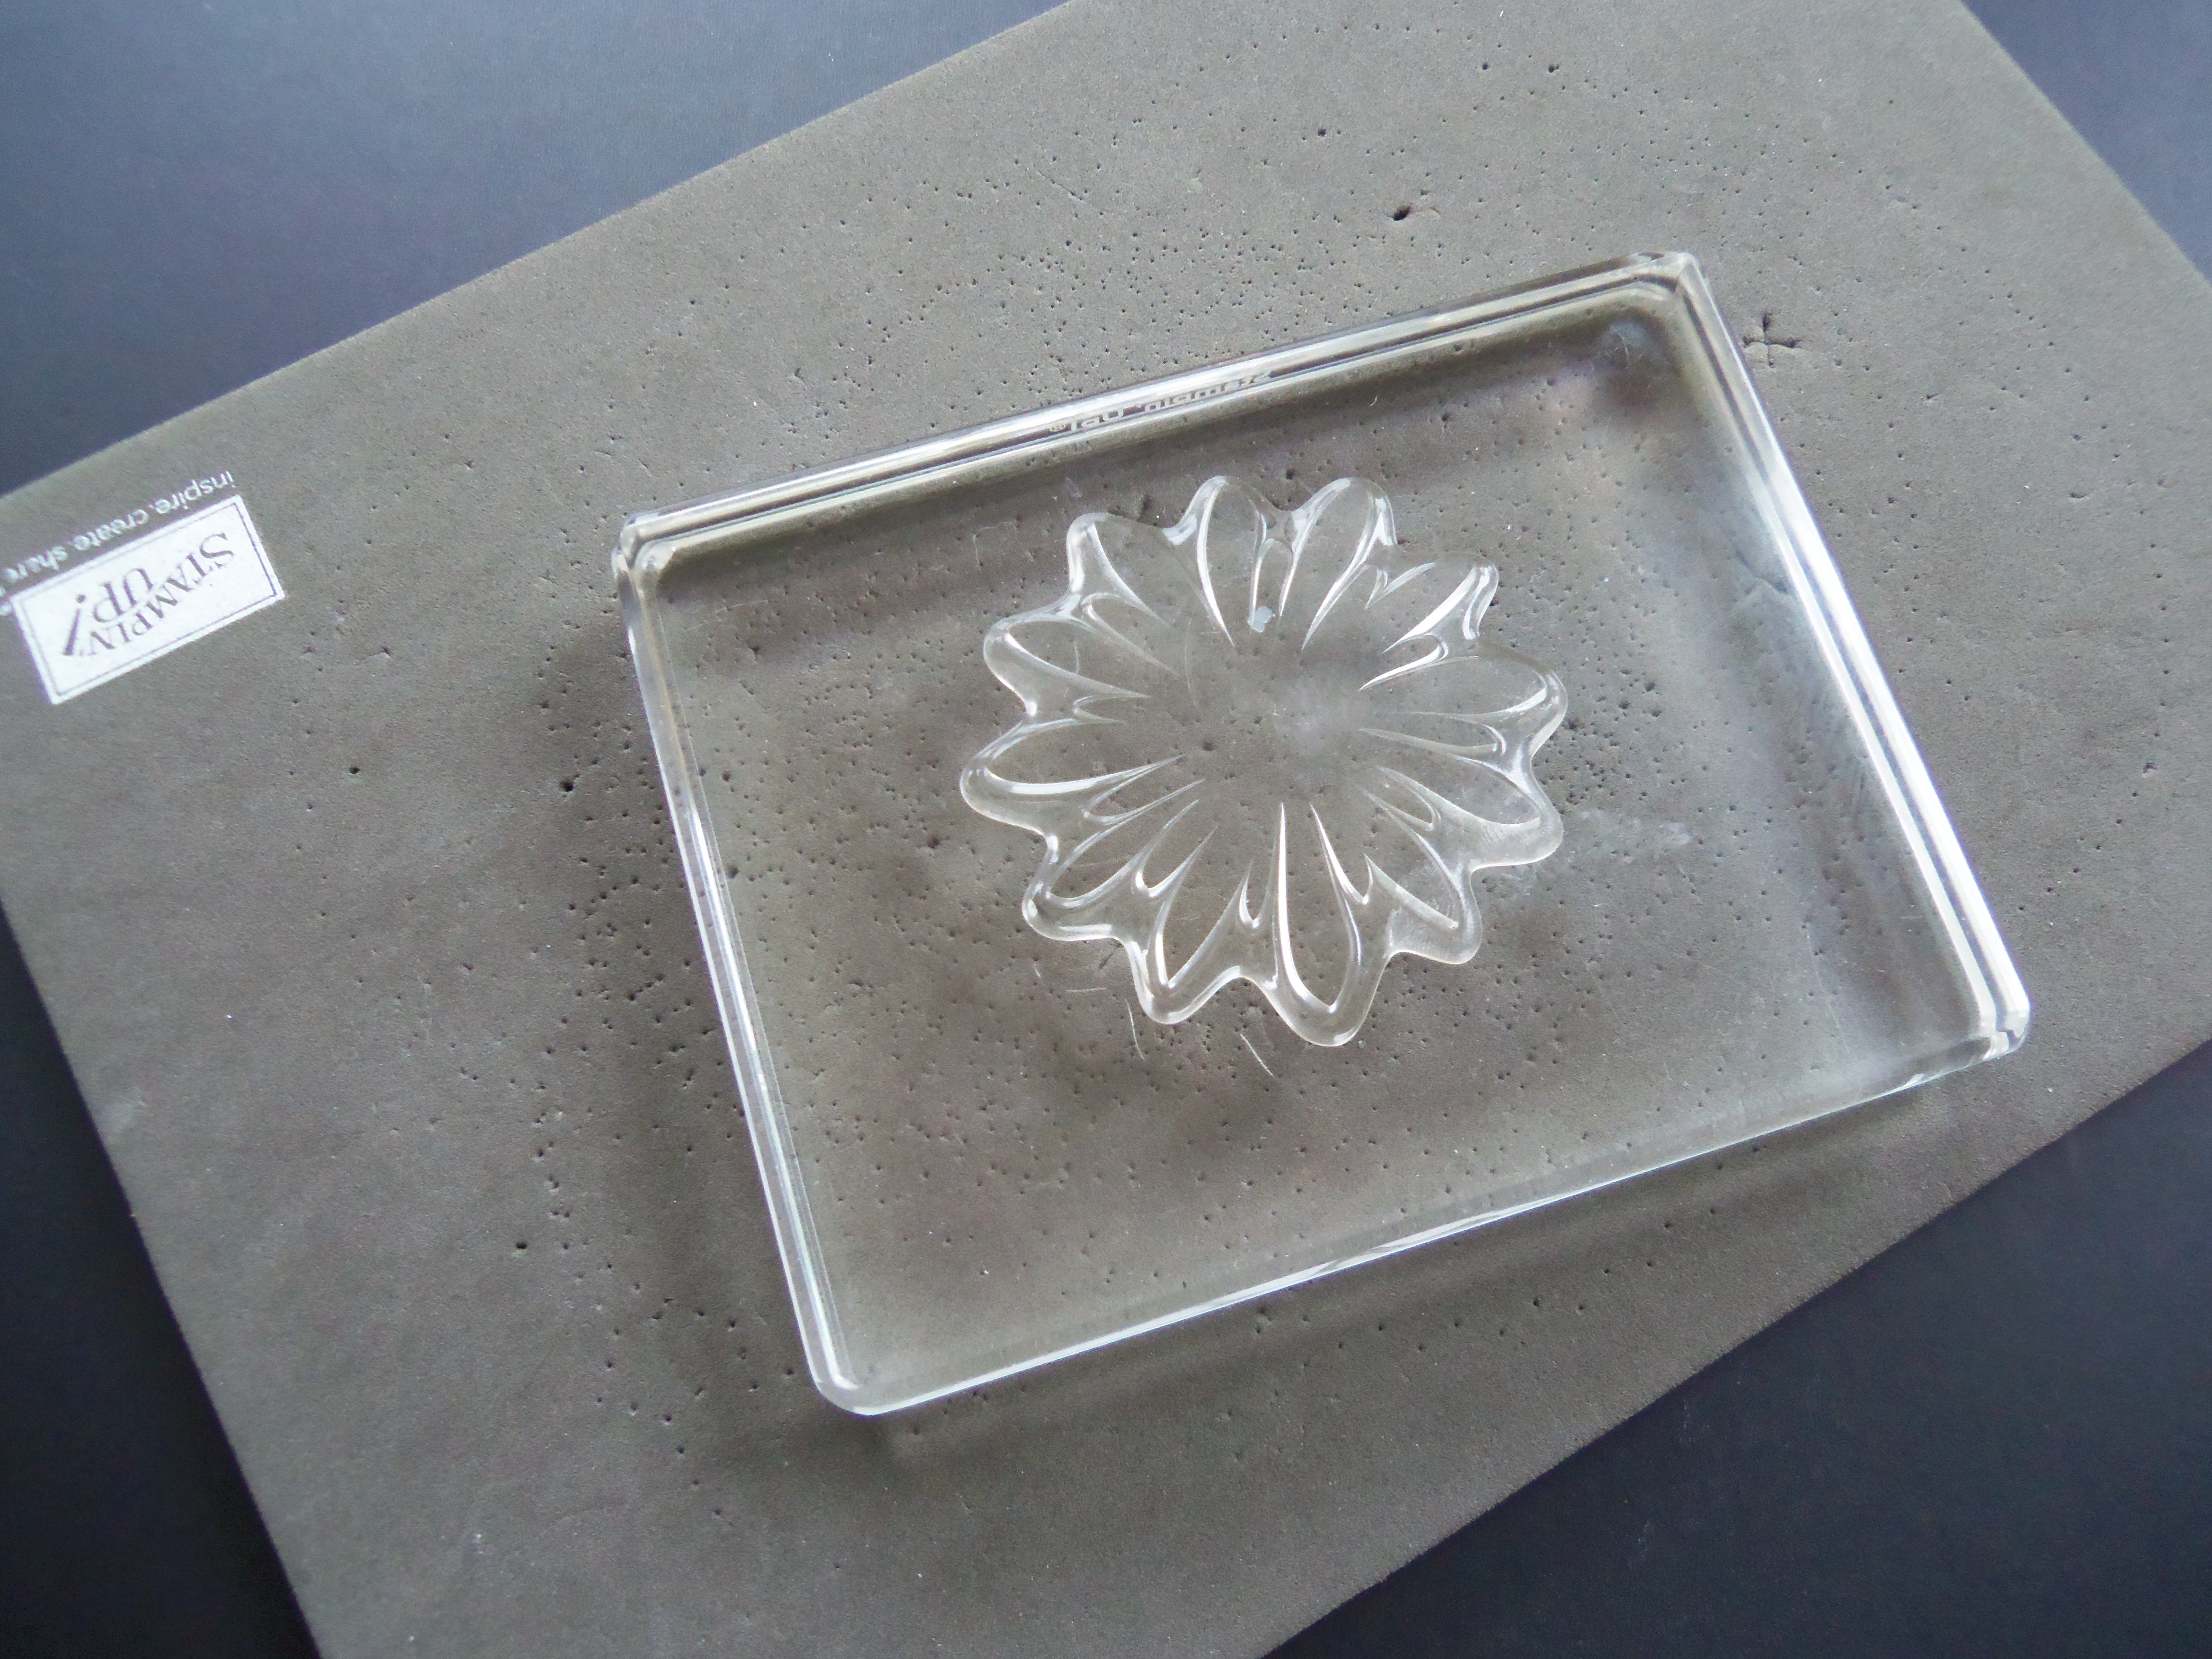 Tip for getting good prints from Flower Patch from theartfulinker.com